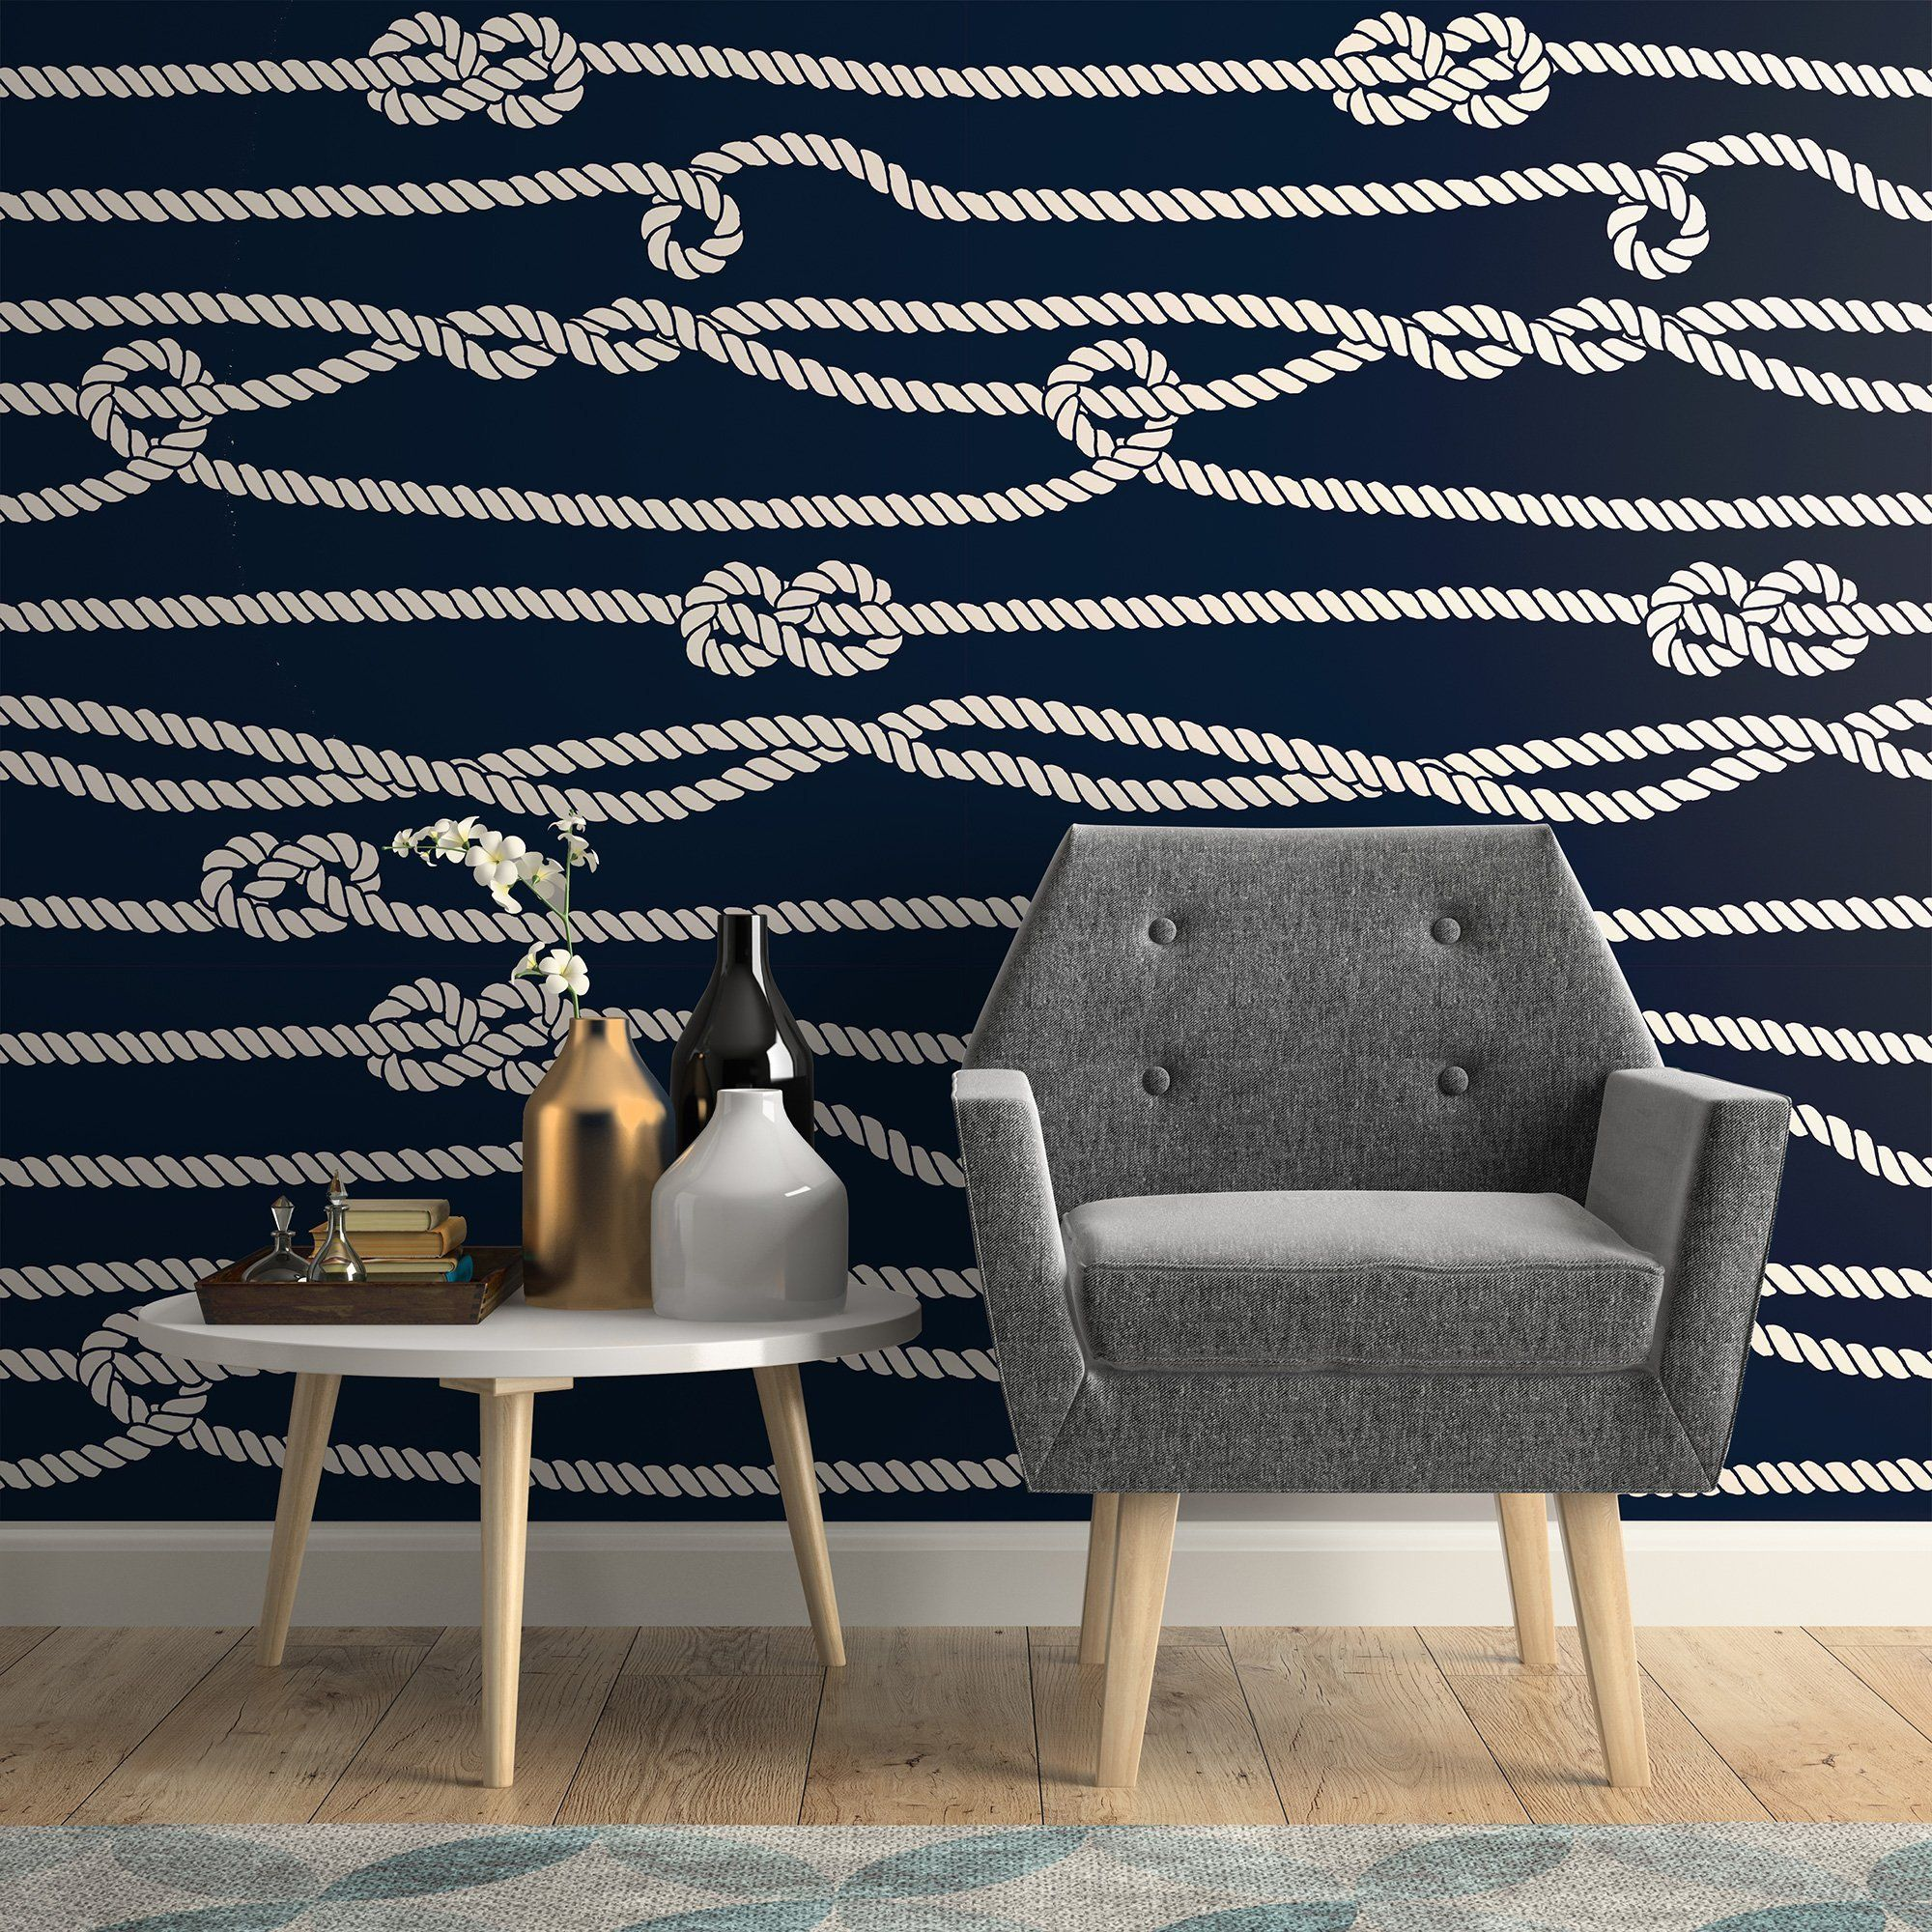 Blue and White Line Nautical Fabric Removable Wallpaper